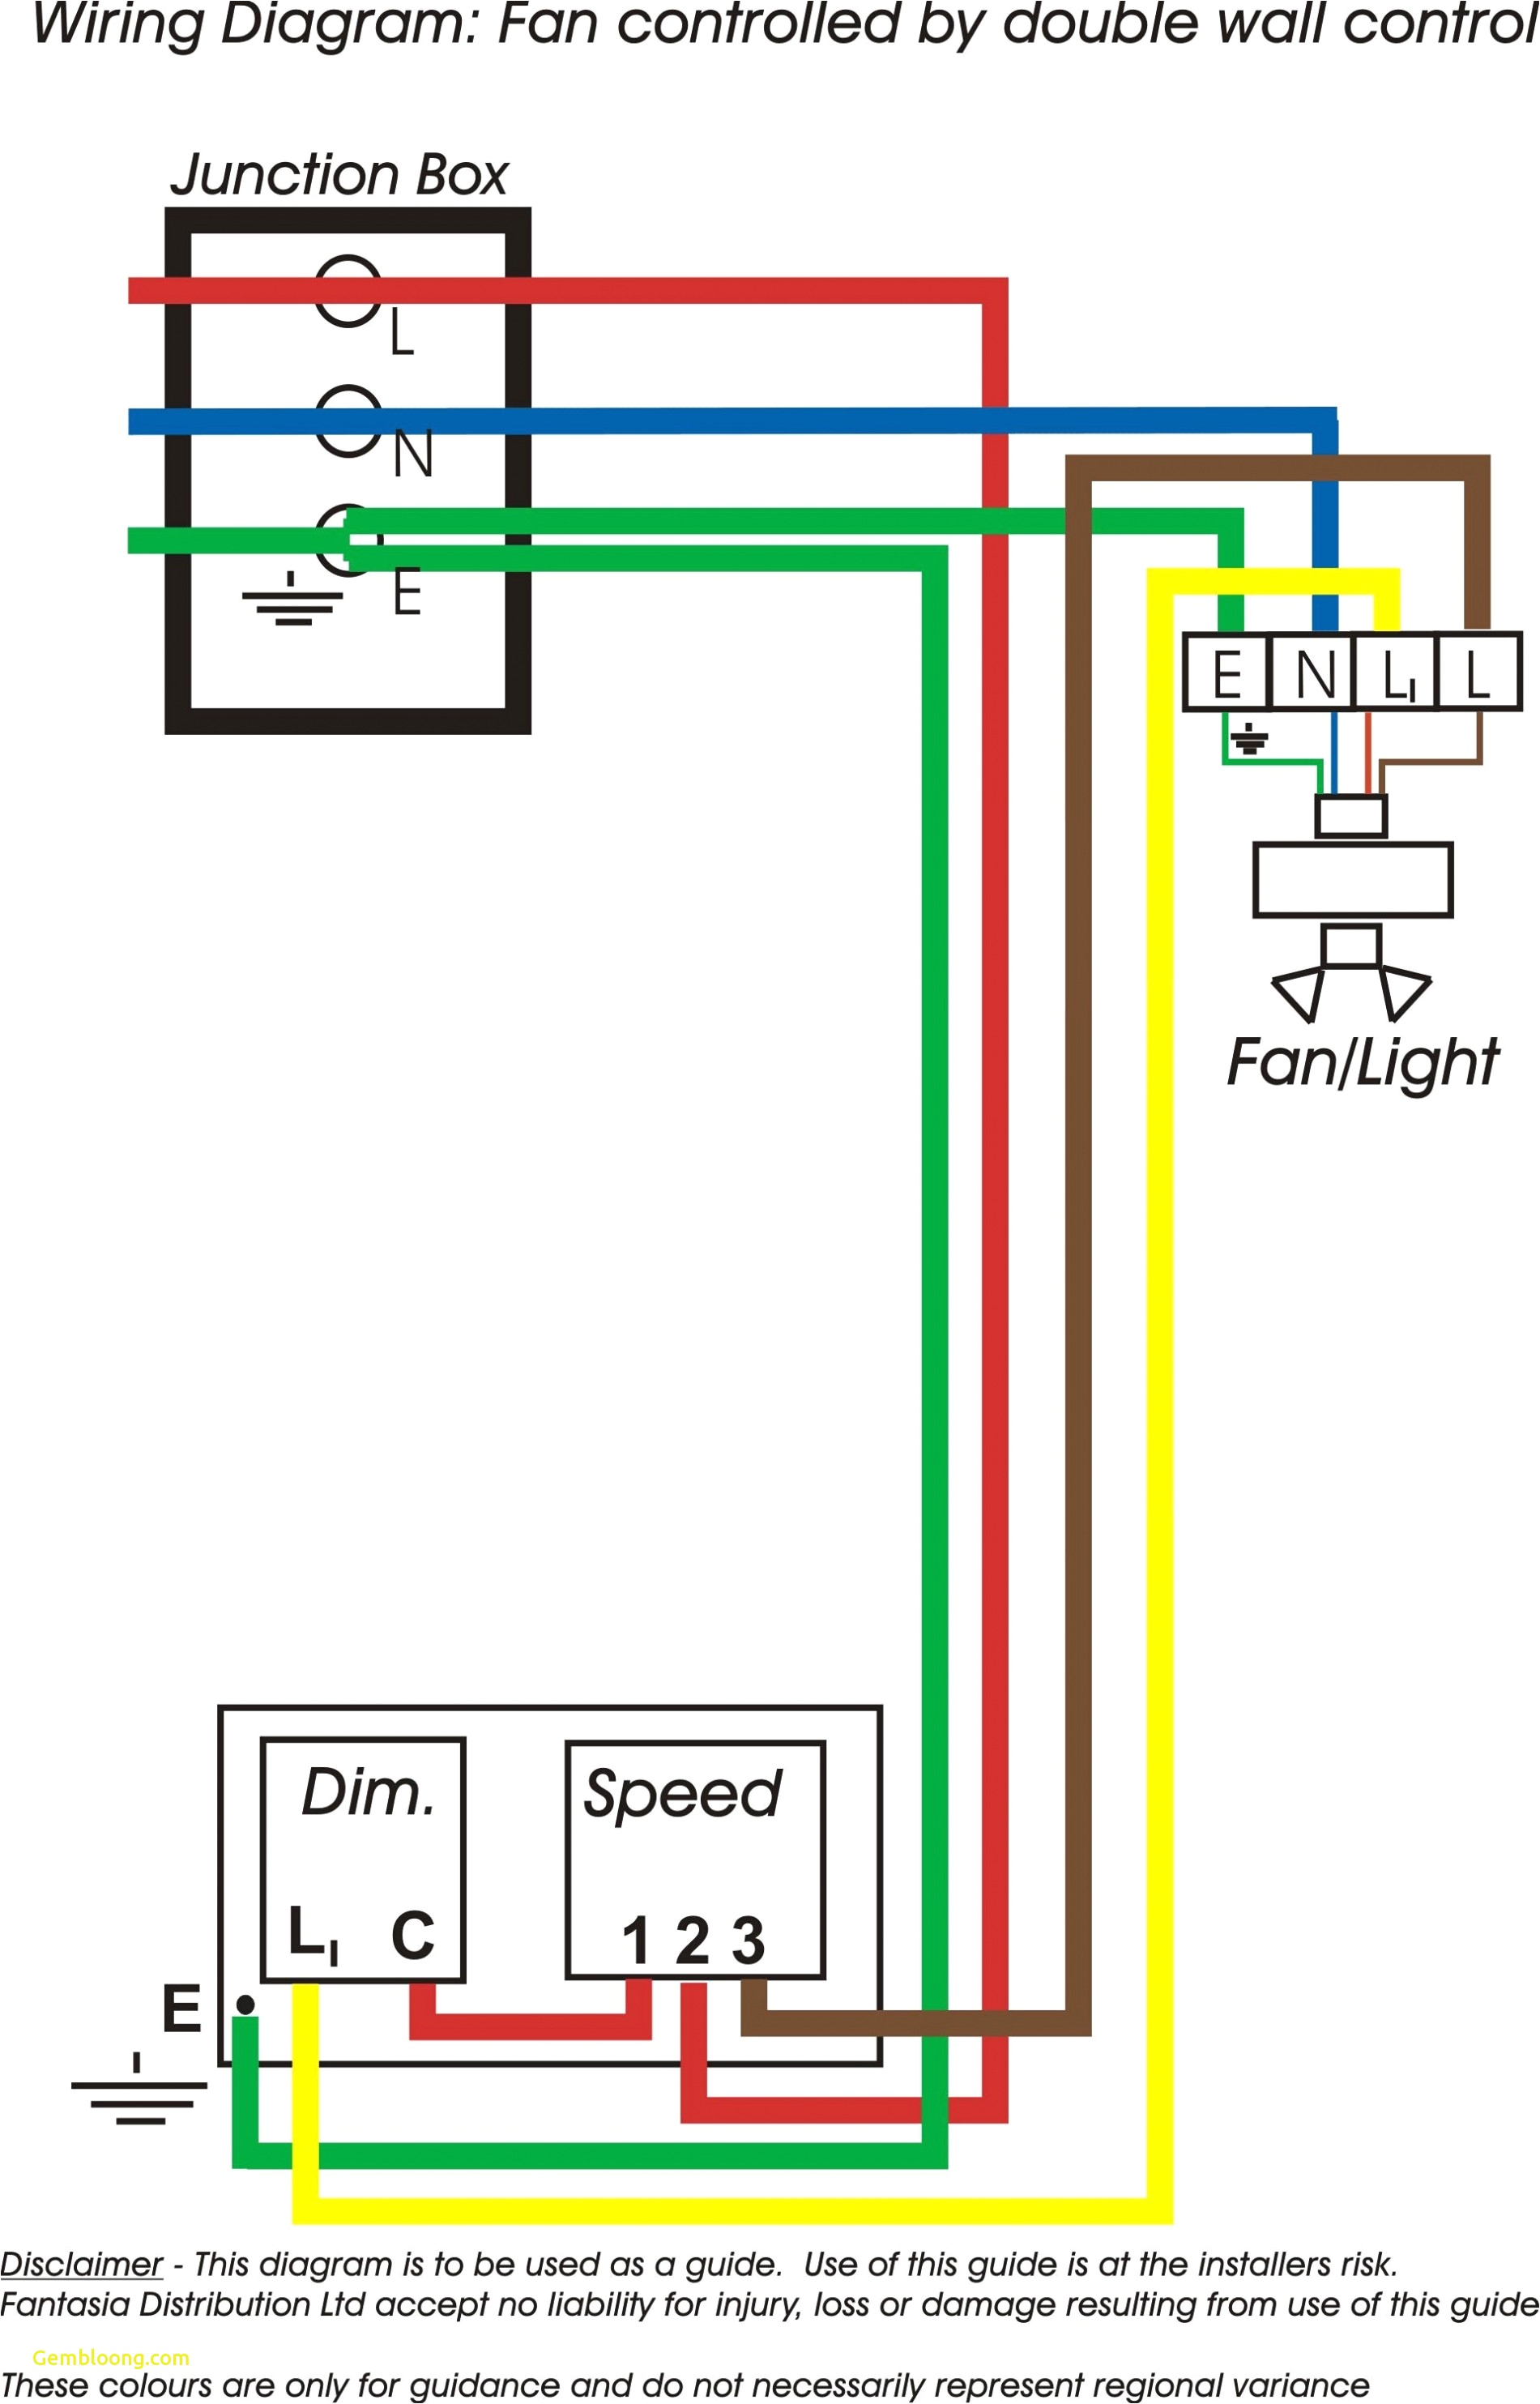 ceiling fan and light wall control luxury ceiling fan pull chain light switch wiring diagram 5a248db1499fe